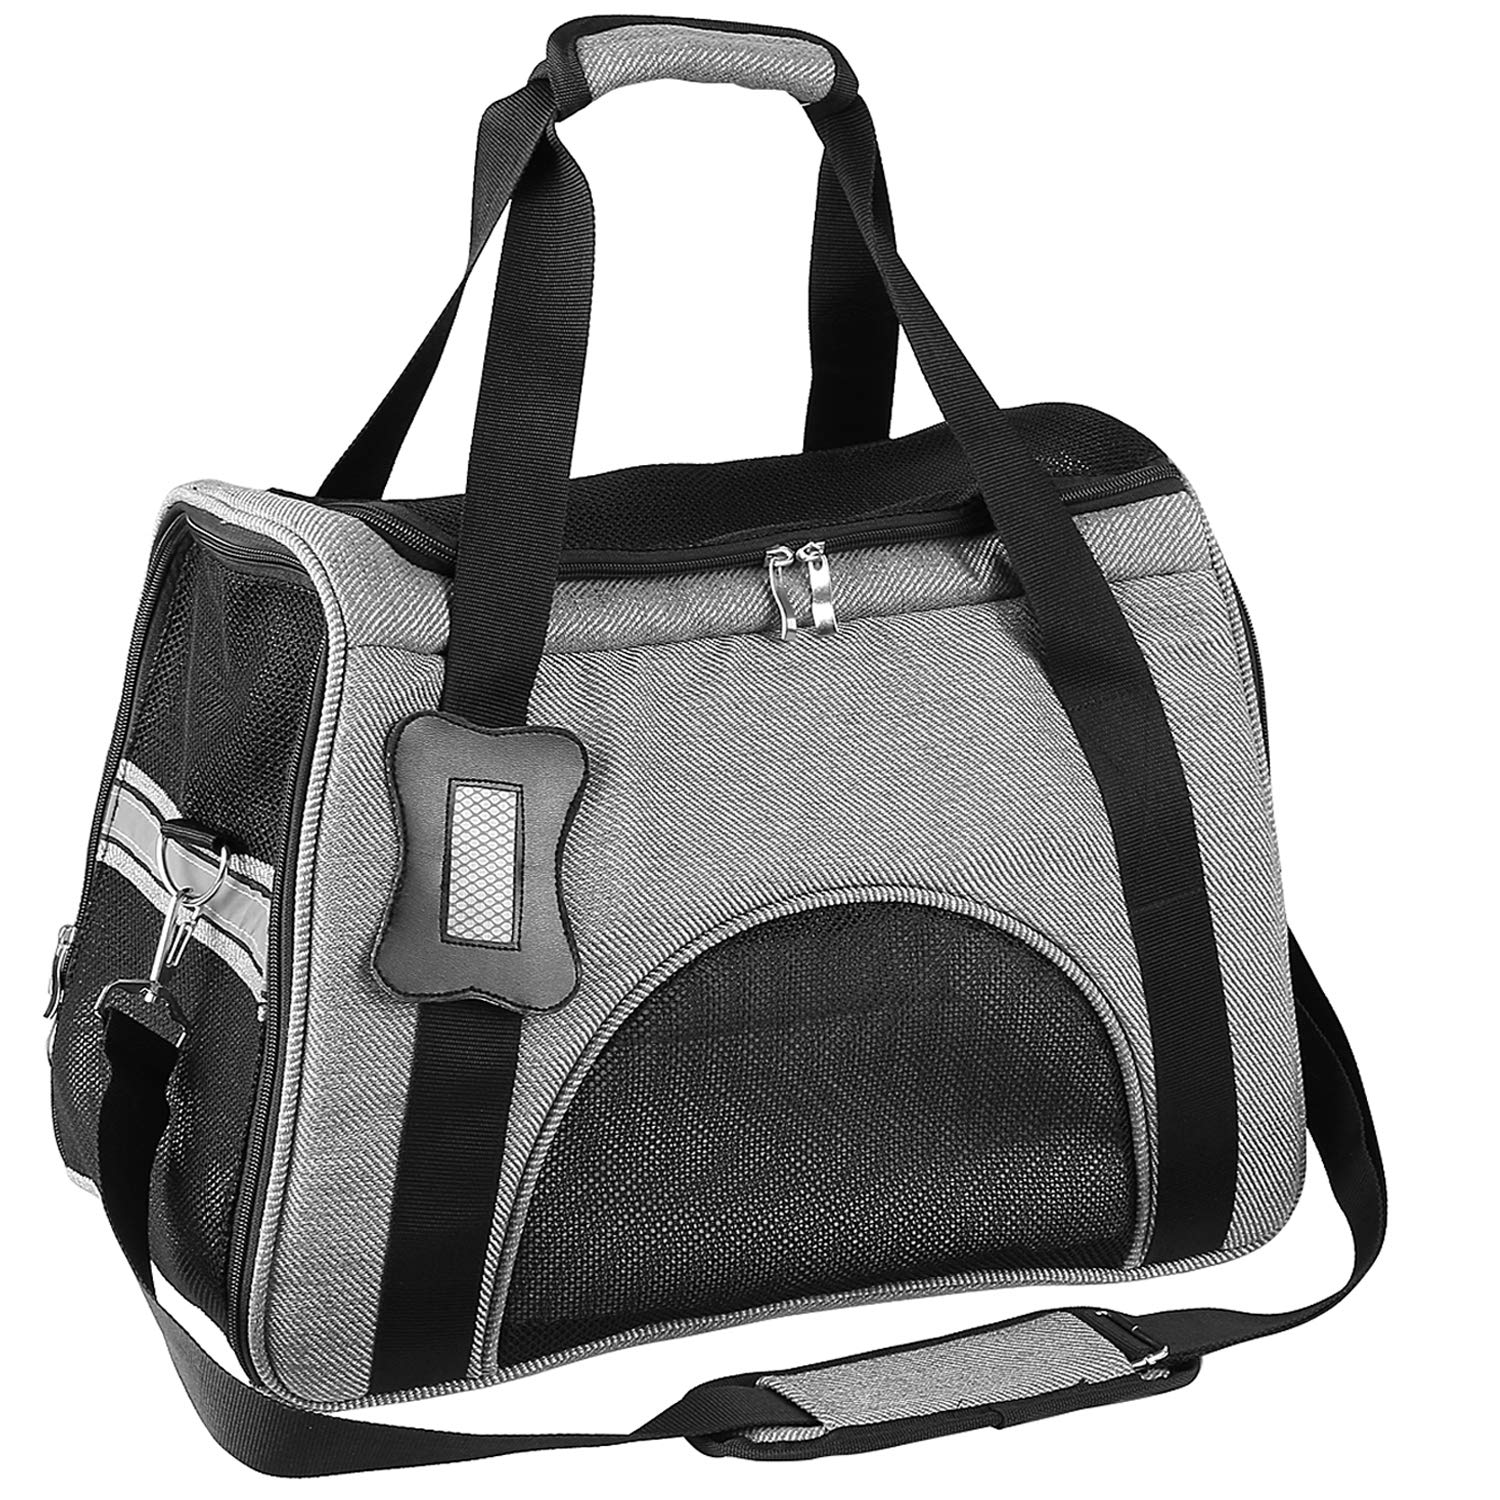 Pedy Pet Carrier, Airline Approved Dog Carrying Bag with Fleece Bedding for Dogs and Cats